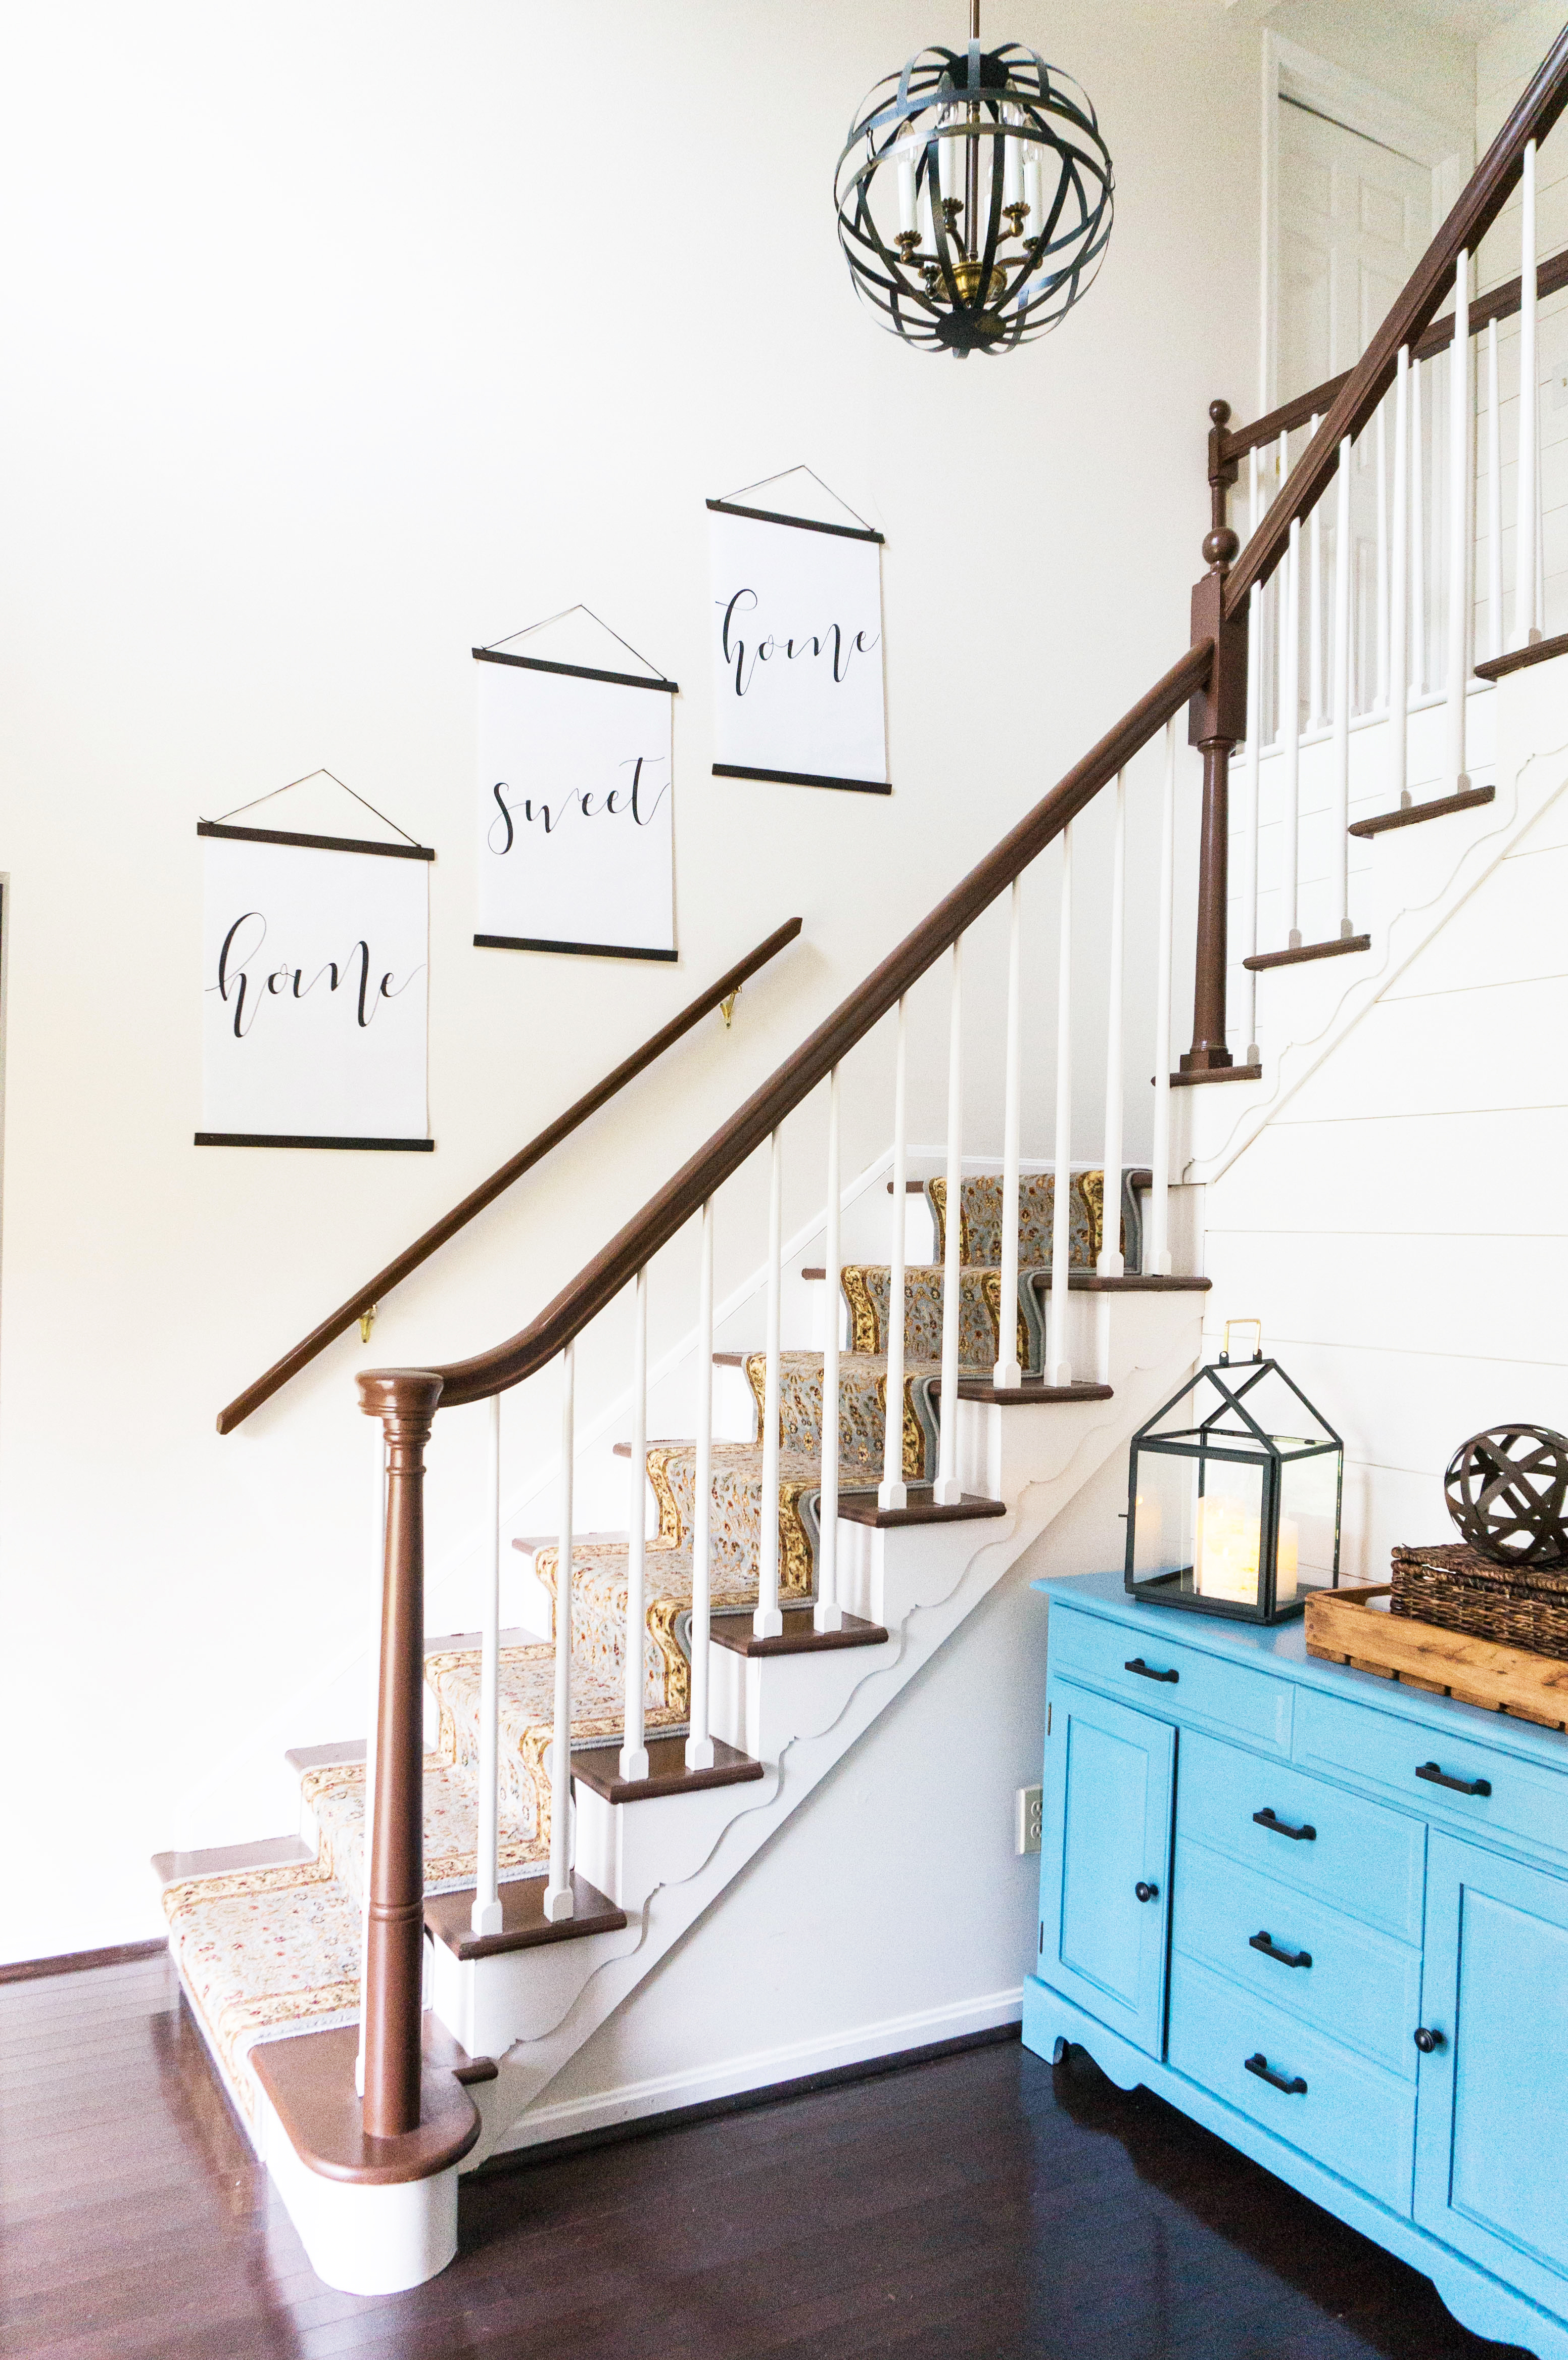 Inexpensive entry remodel reveal. Find out how our farmhouse foyer turned out. Our fixer upper foyer needed a major redo. See how we rennovated our foyer on a budget. #farmhousedecor #farmhouse #fixerupper #foyer #entryway